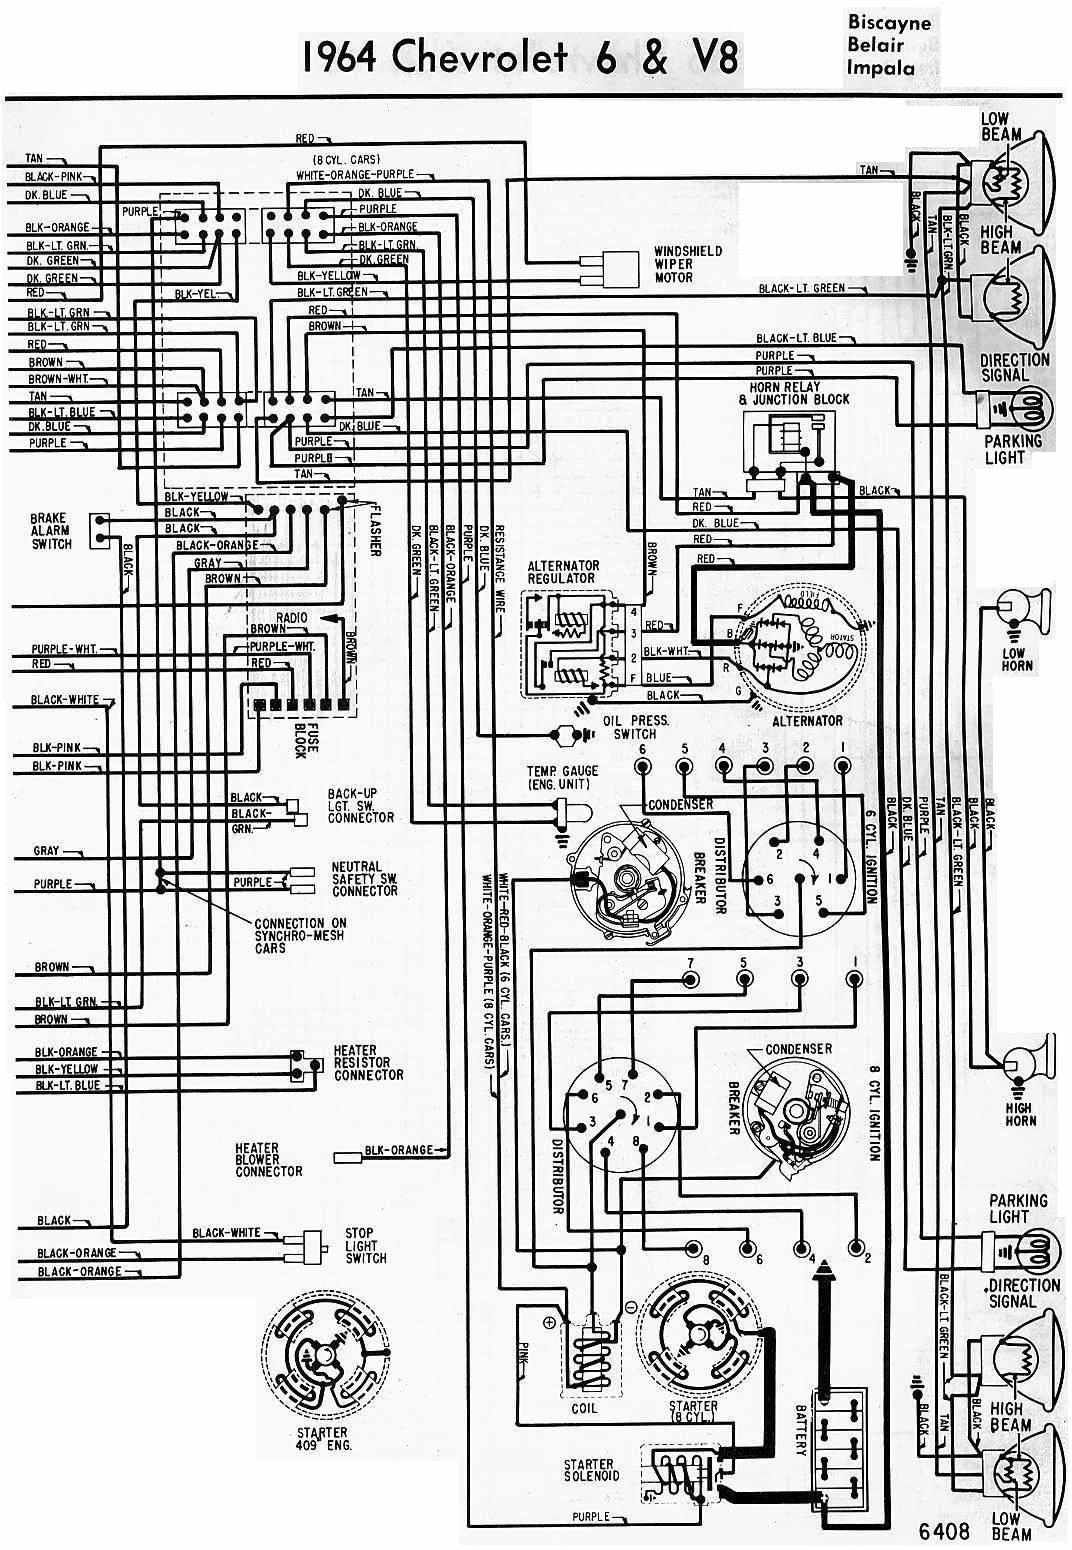 1964 gm ignition wiring diagram electrical wiring diagram of 1964 chevrolet 6 and v8 | all ... 77 gm ignition wiring diagram